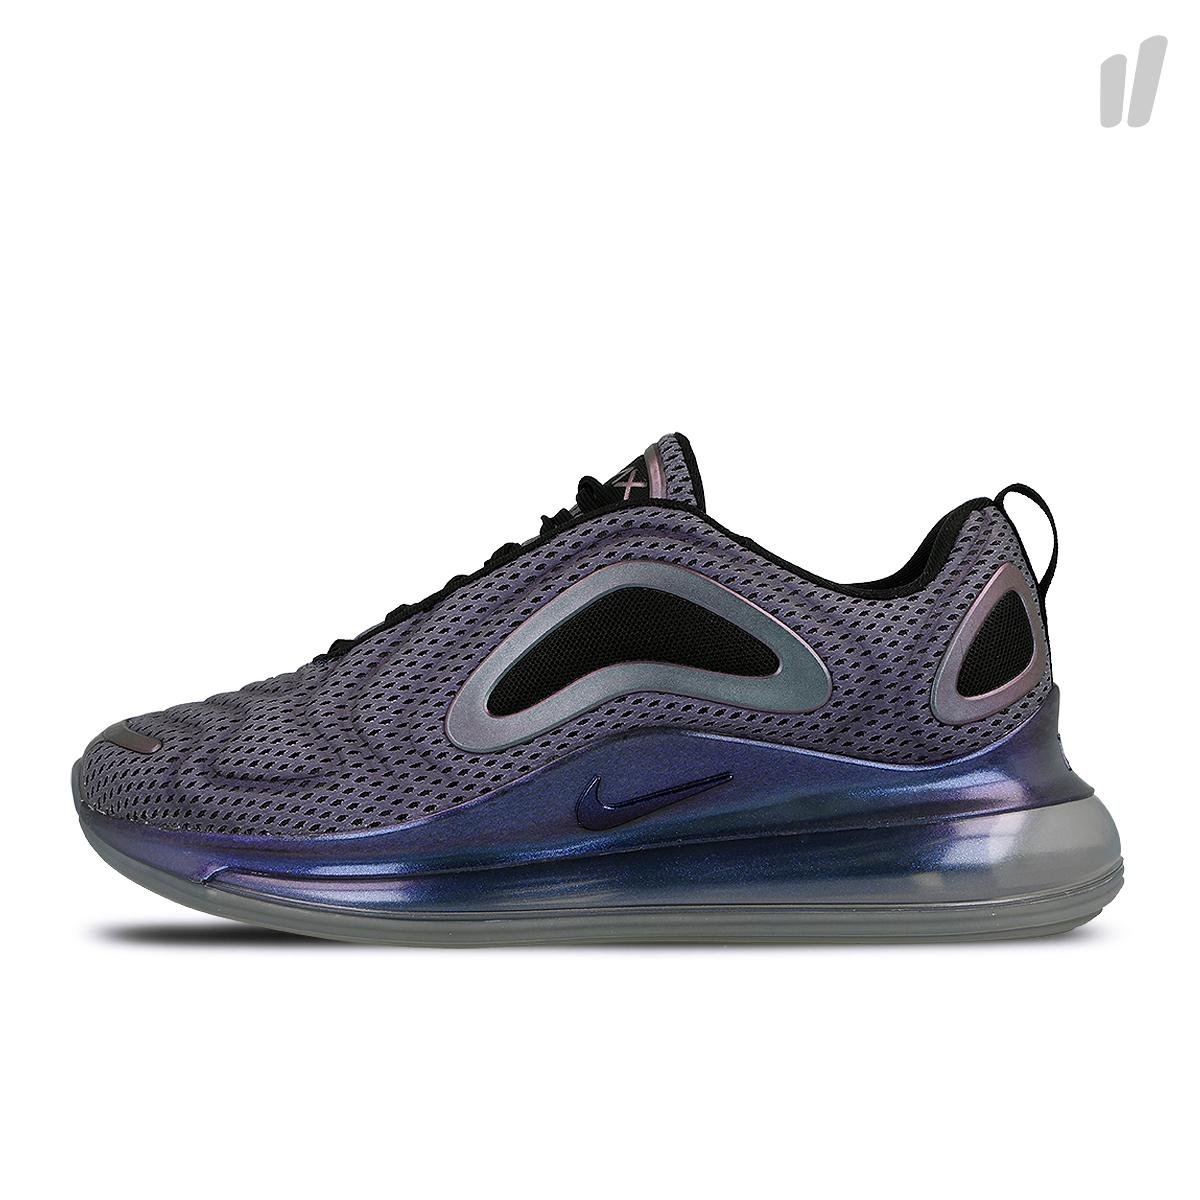 Nike Air Max 720 Northern Lights (AO2924 001)